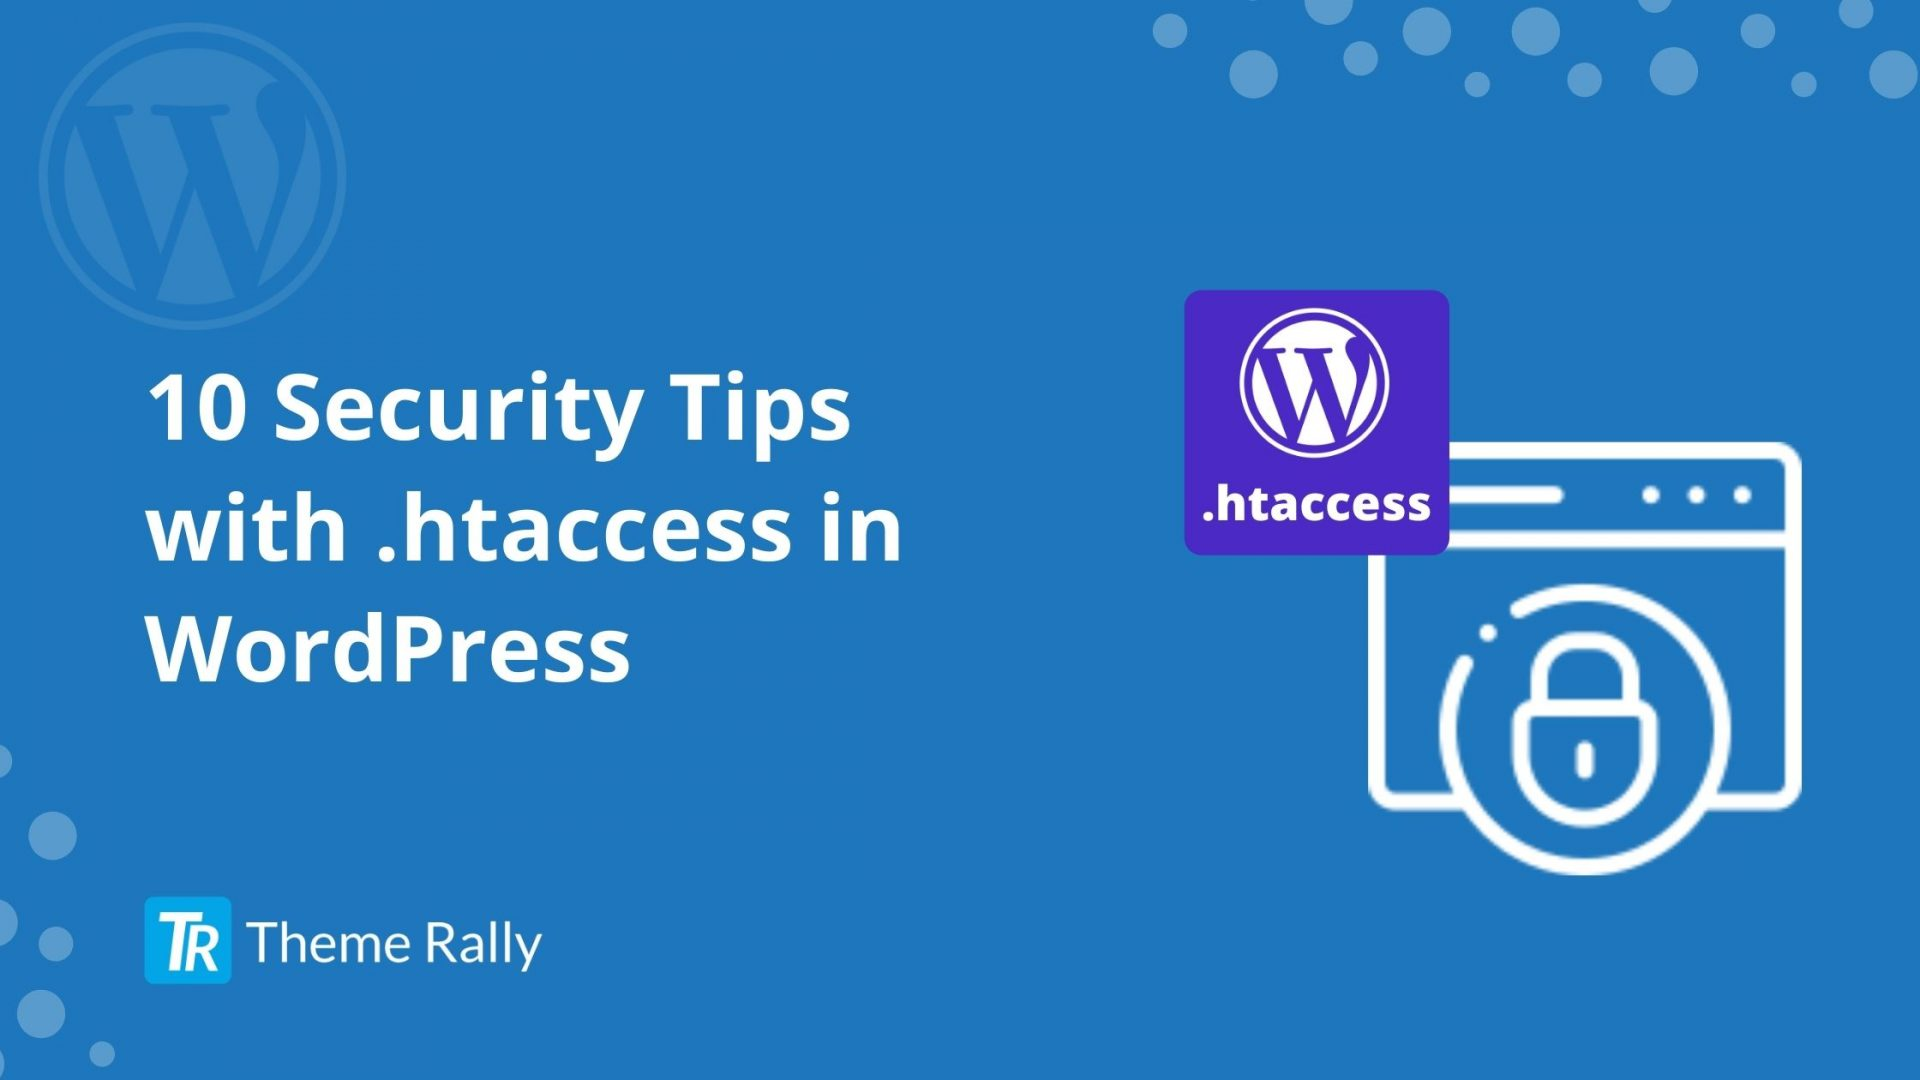 Security Tips with .htaccess in WordPress